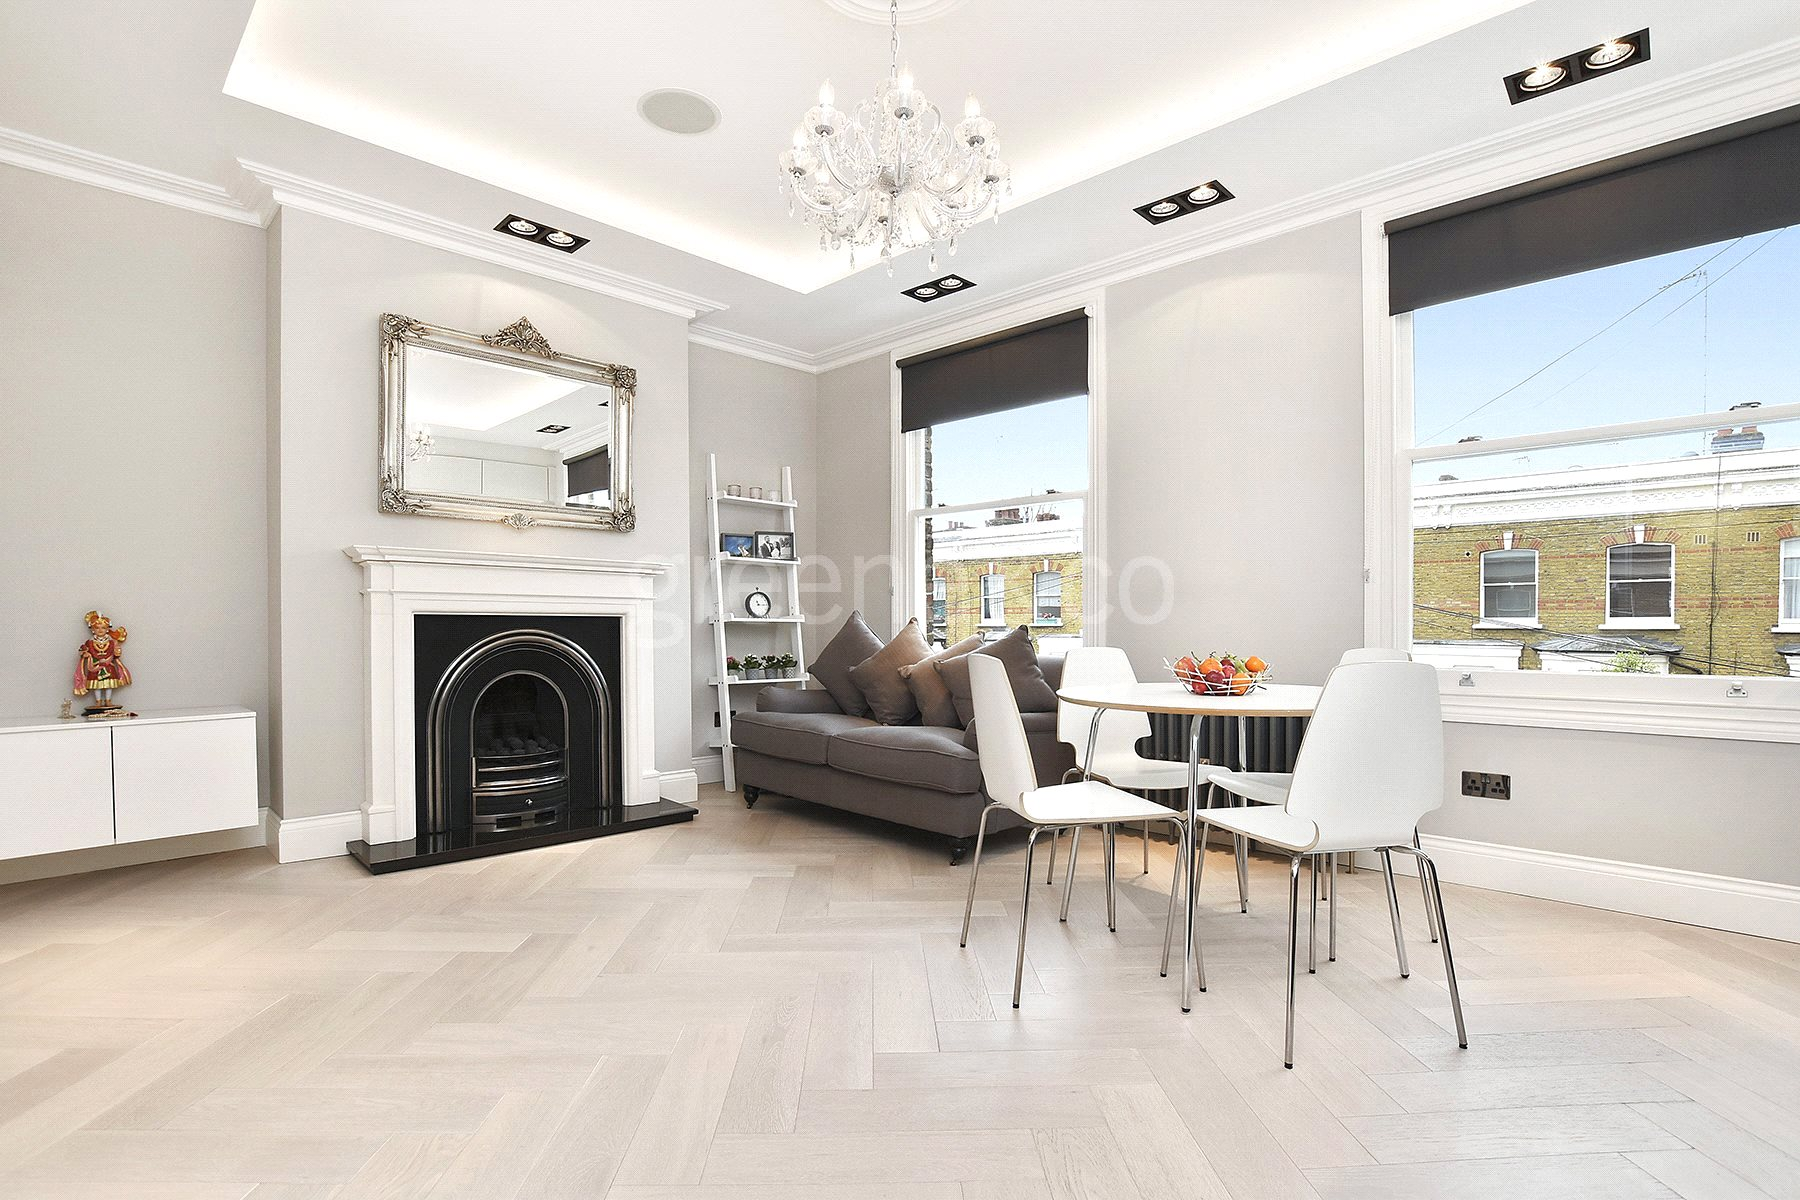 2 Bedrooms Flat for sale in Errington Road, Maida Vale, London, W9